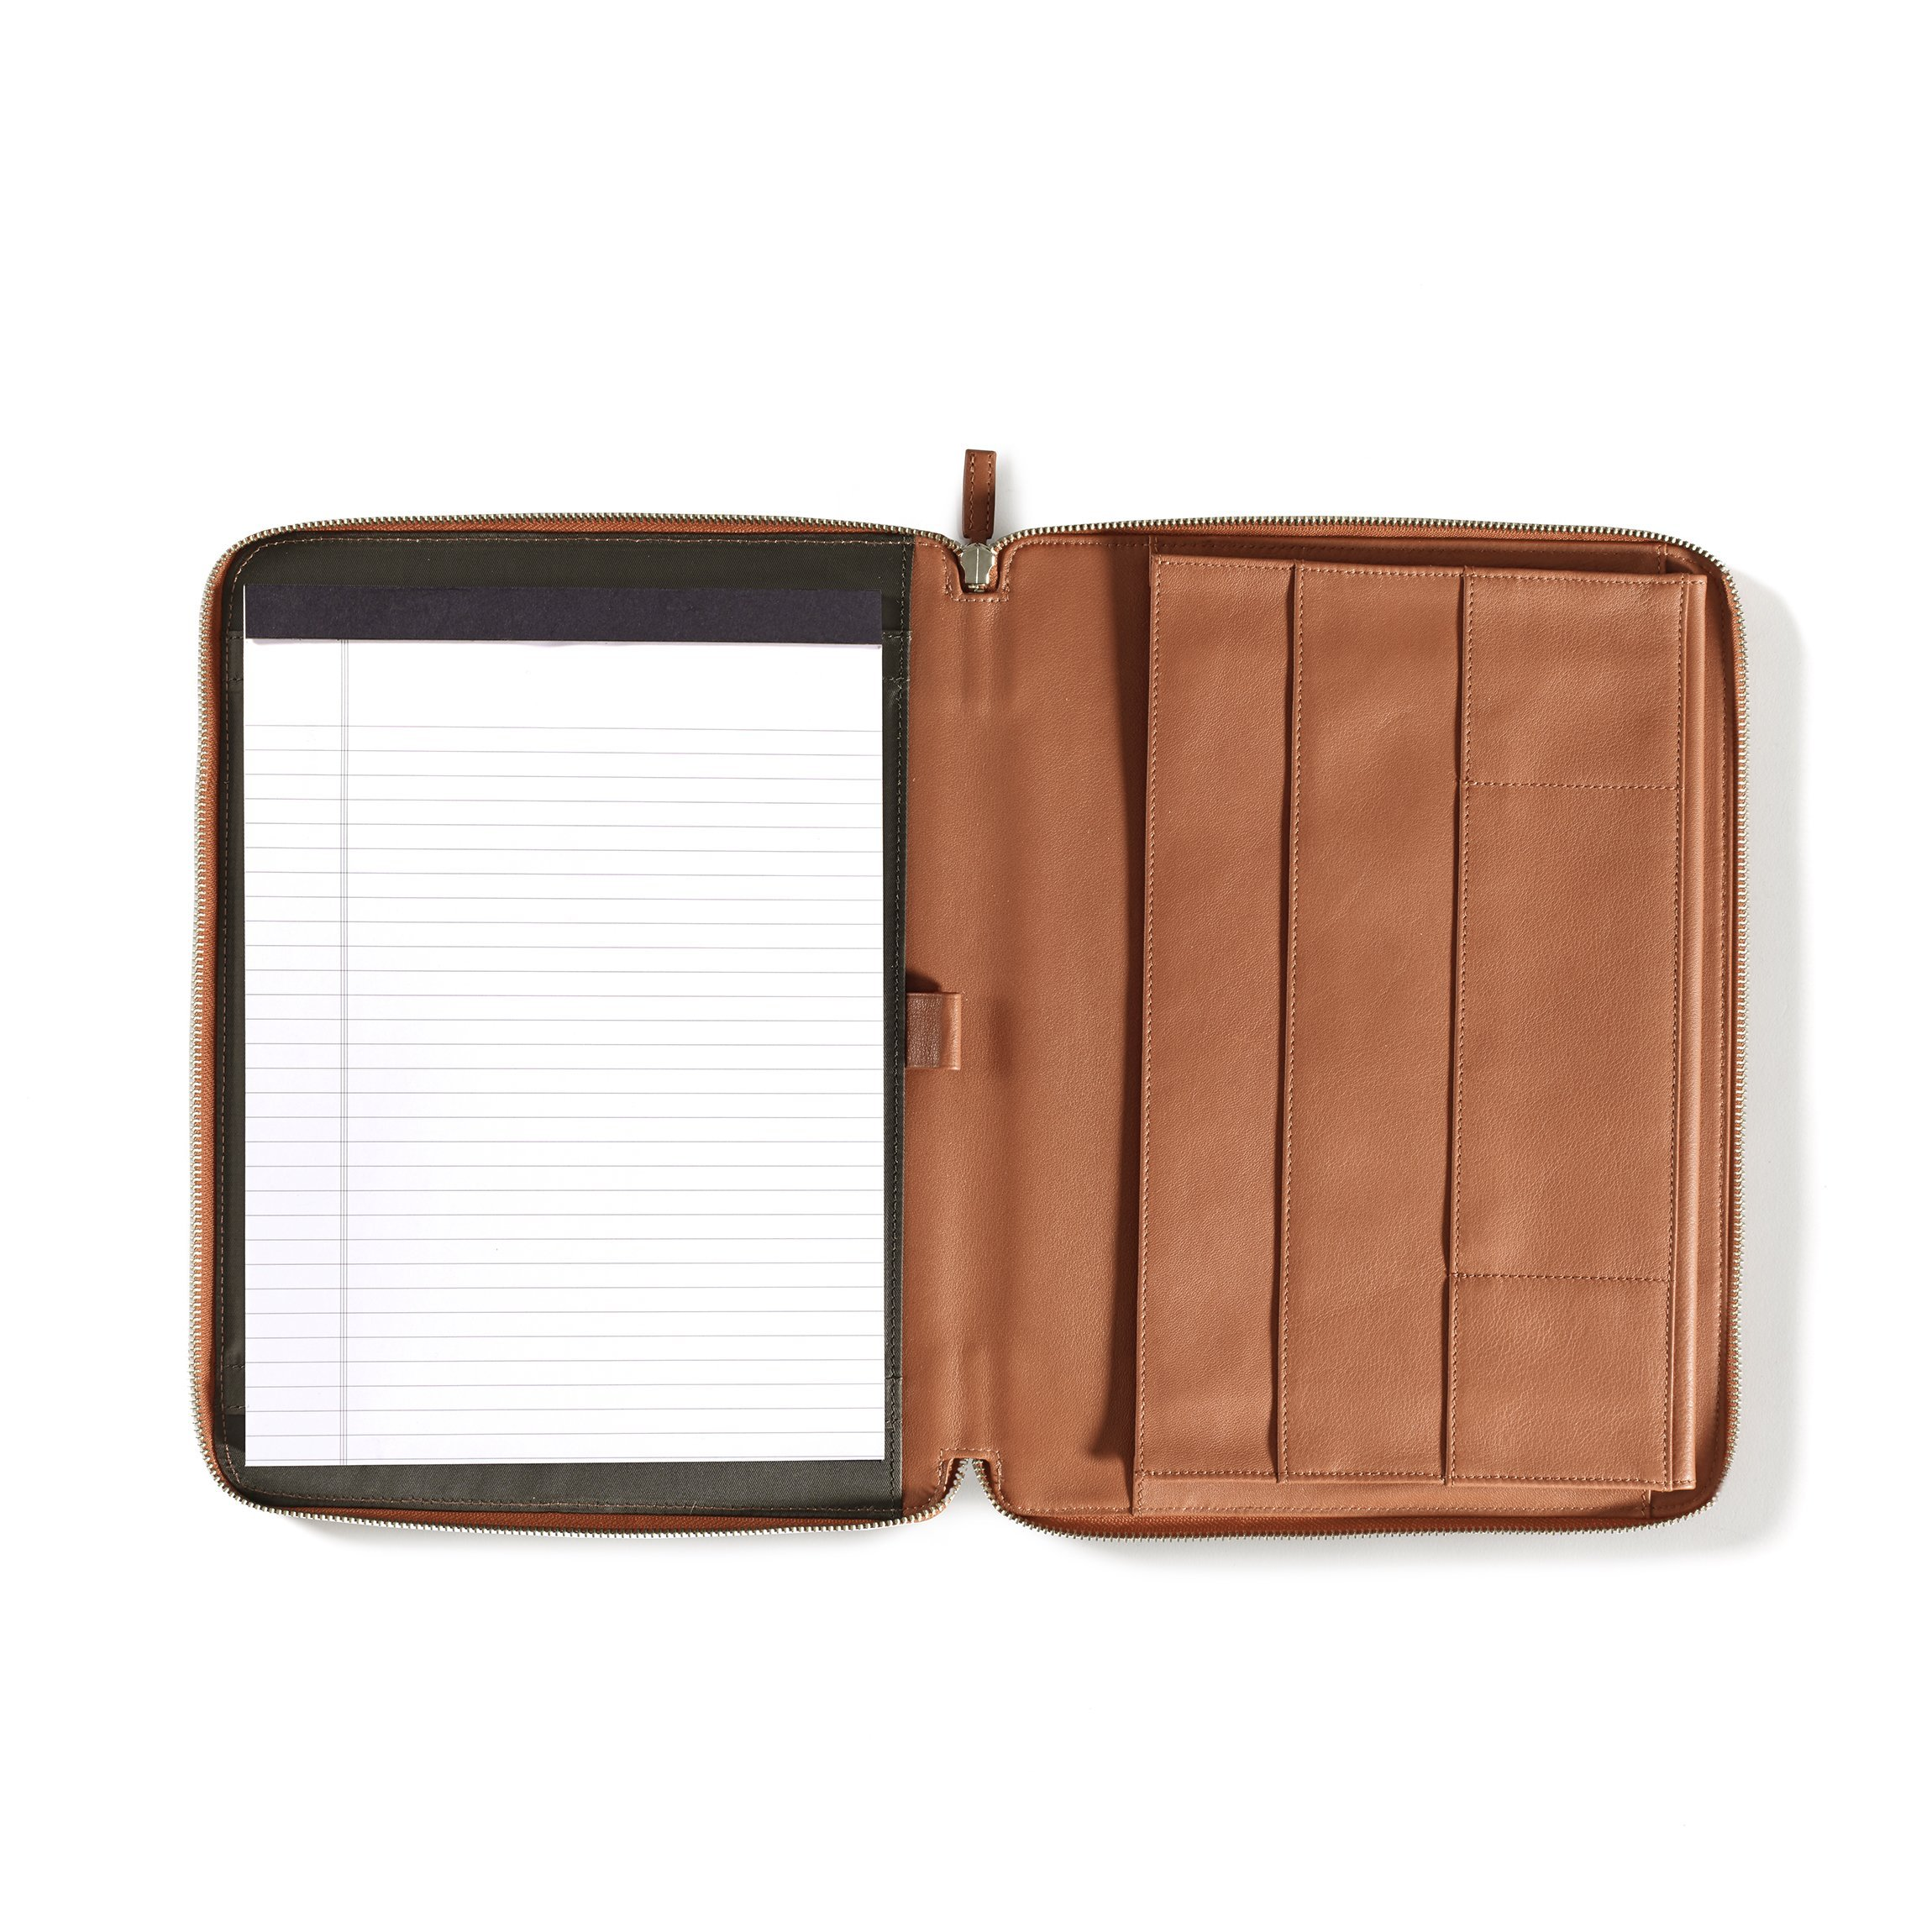 Left Handed Executive Zippered Portfolio - Full Grain Leather Leather - Cognac (brown)